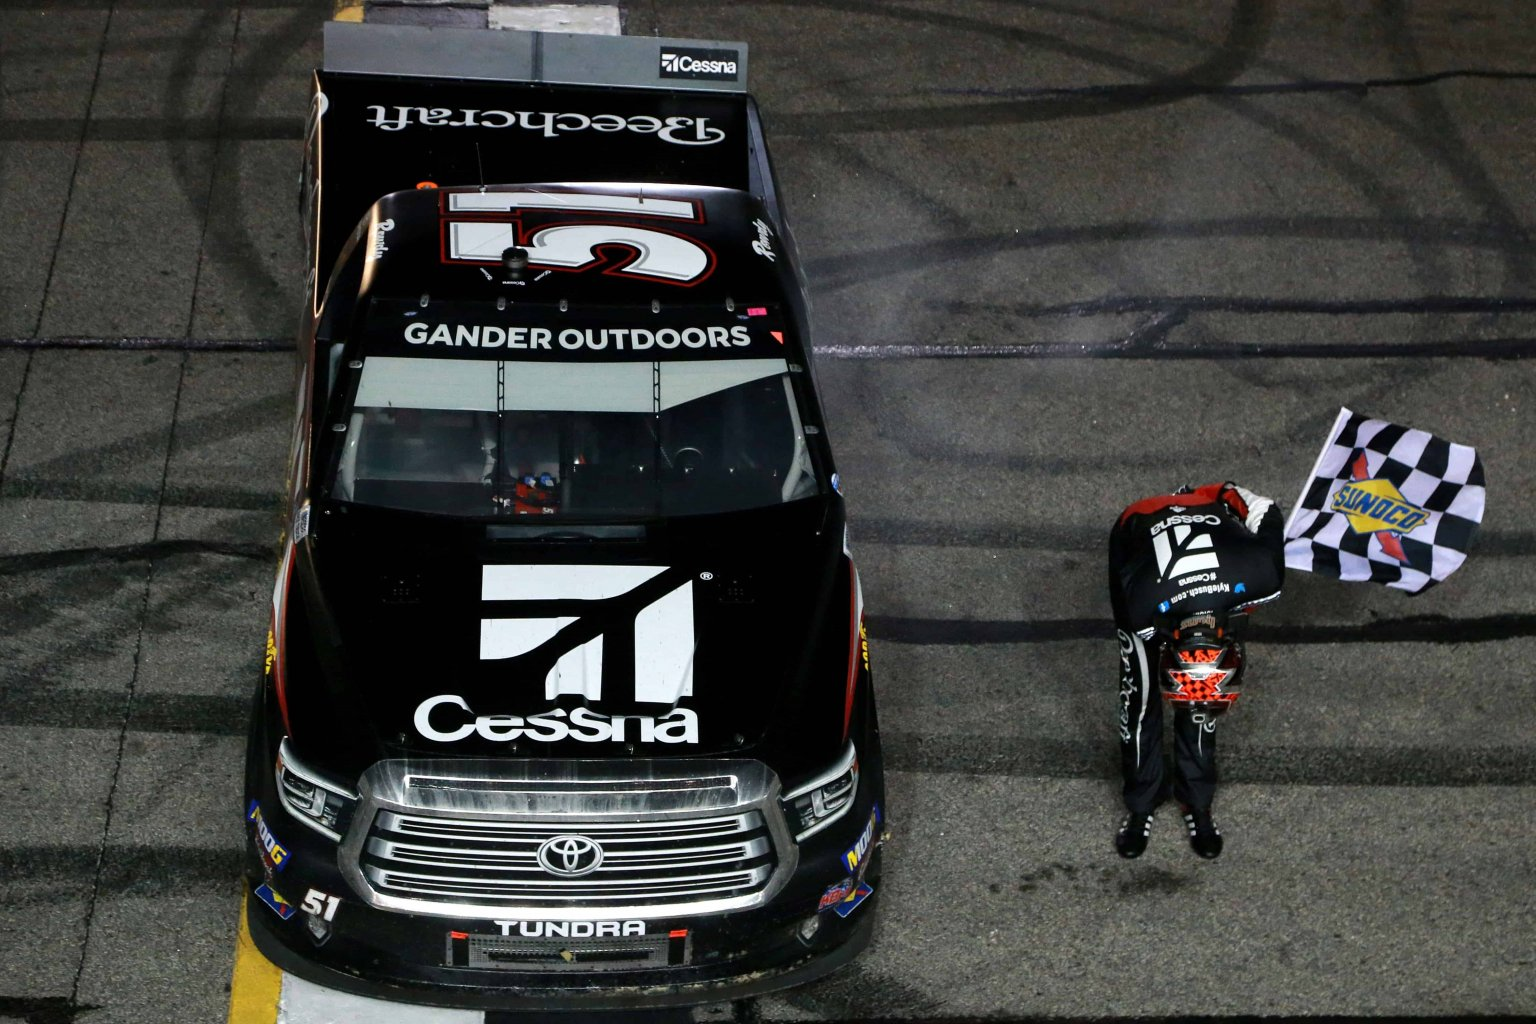 $100,000 bounty on Kyle Busch created by Kevin Harvick in NASCAR Truck Series